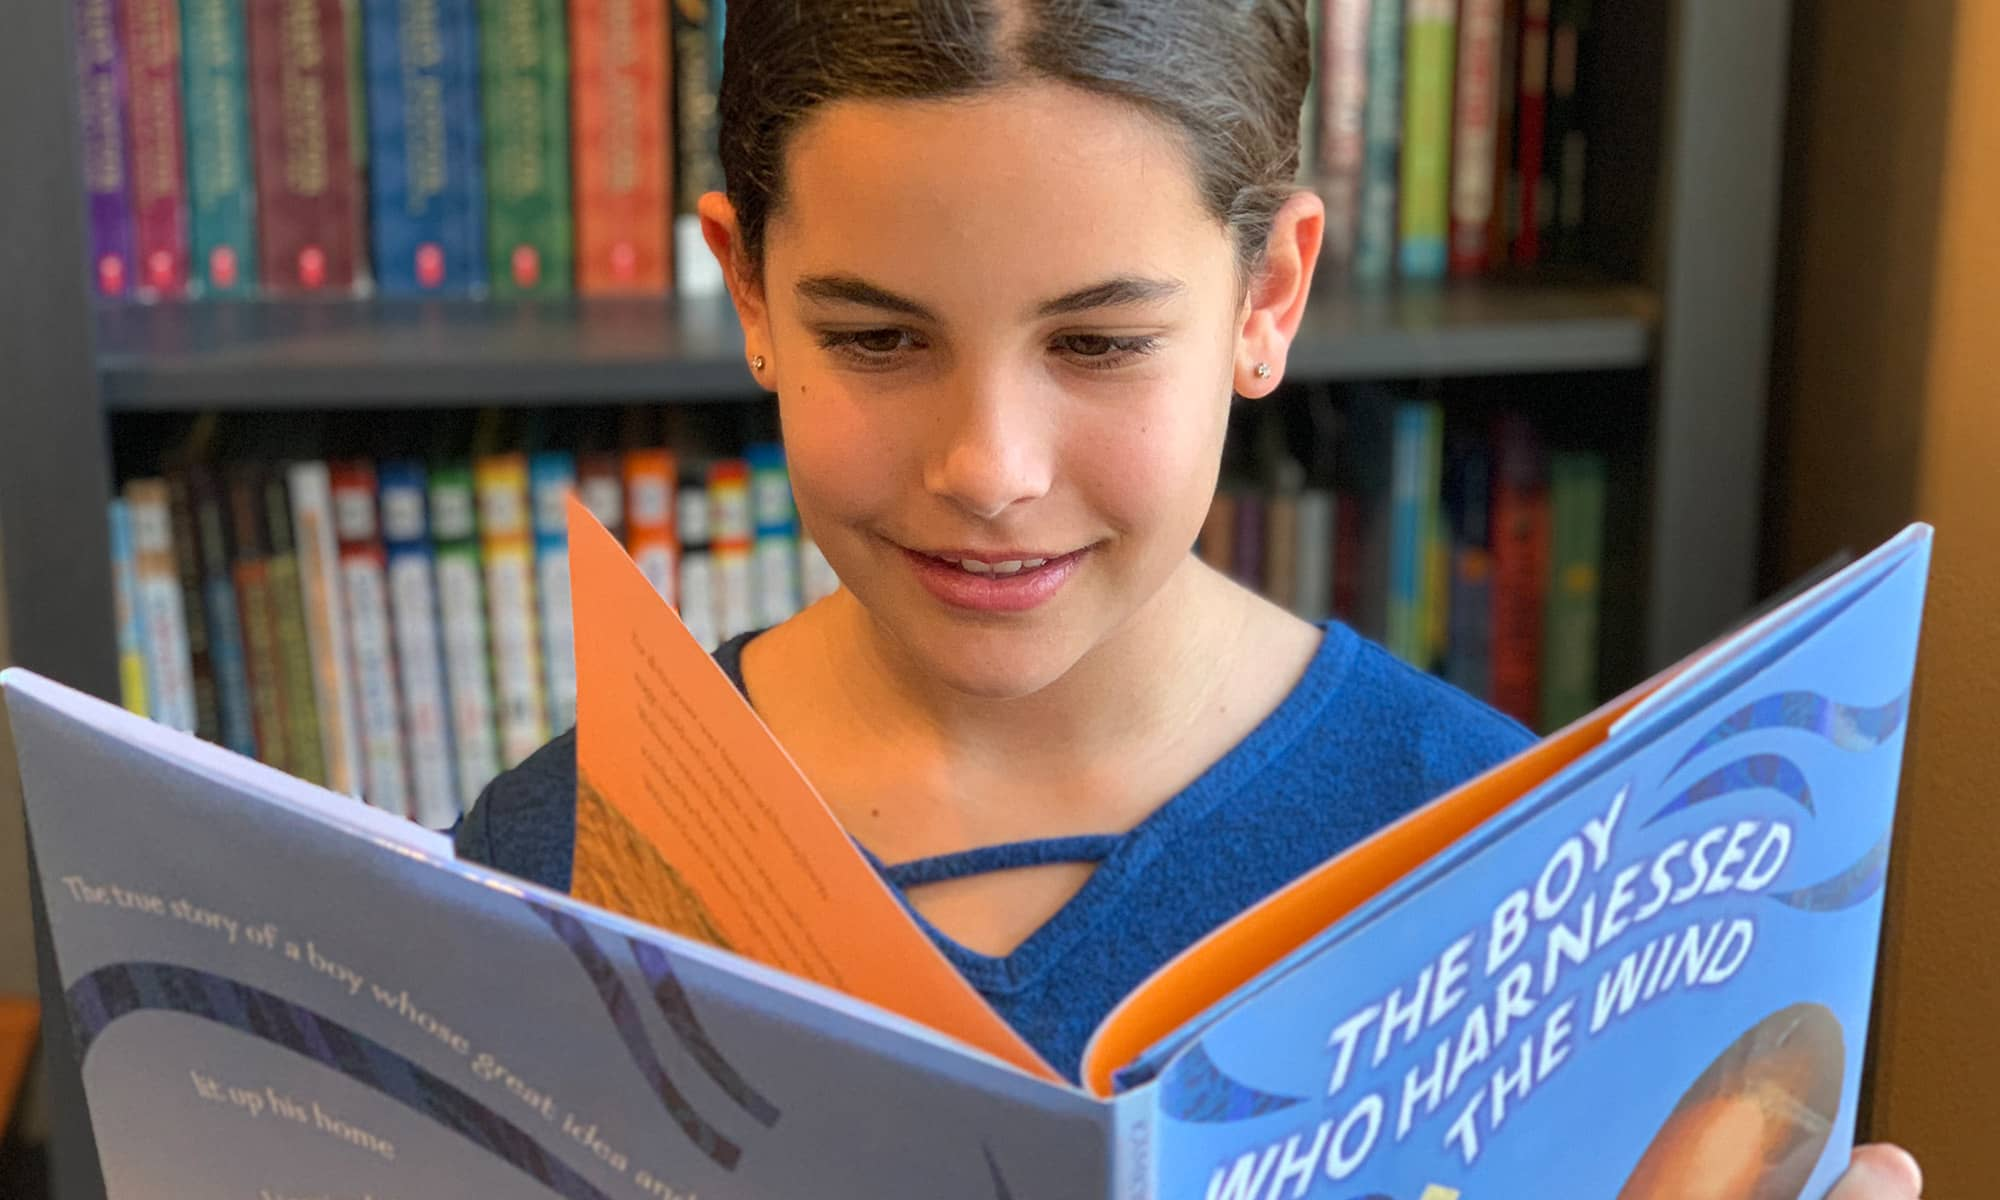 A female student smiles while reading The Boy Who Harnessed the Wind.